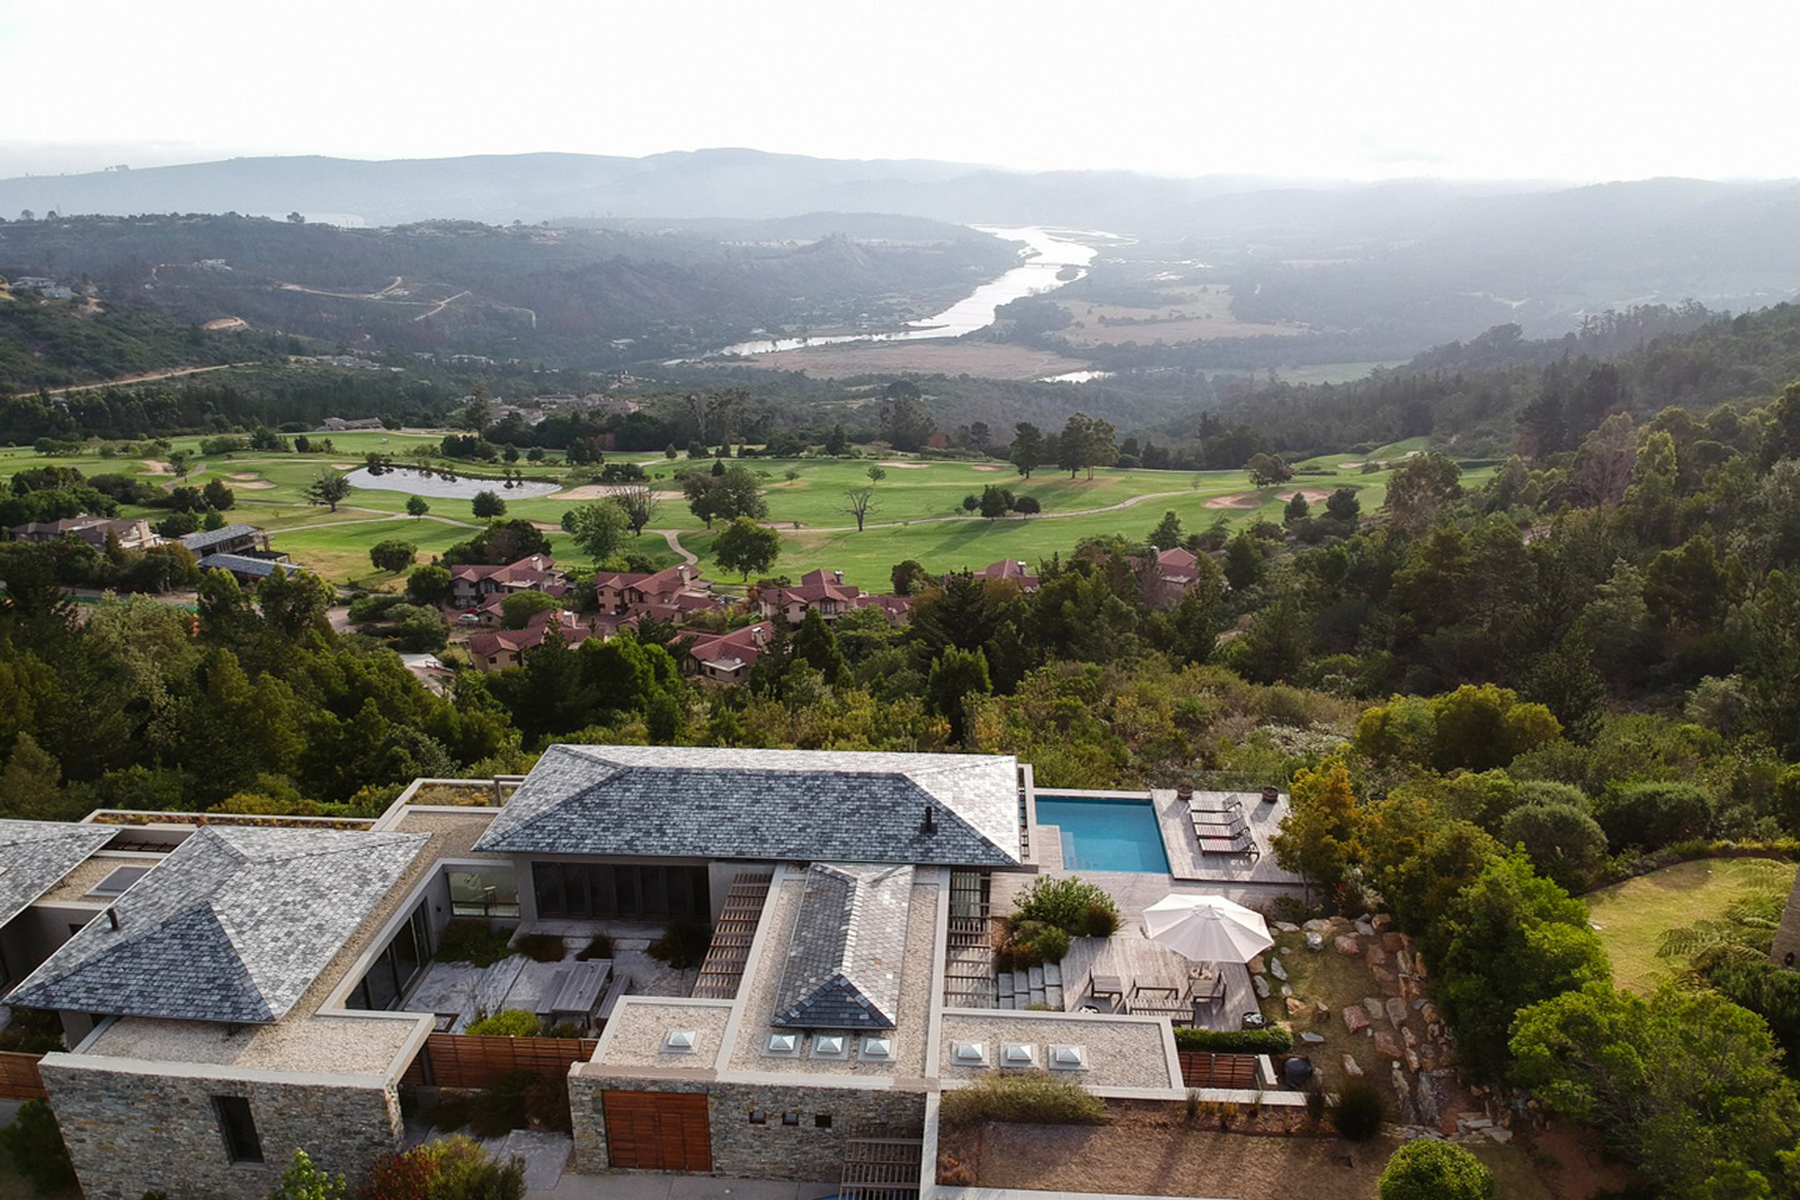 Property for Sale at Simola Knysna, Western Cape 6530 South Africa